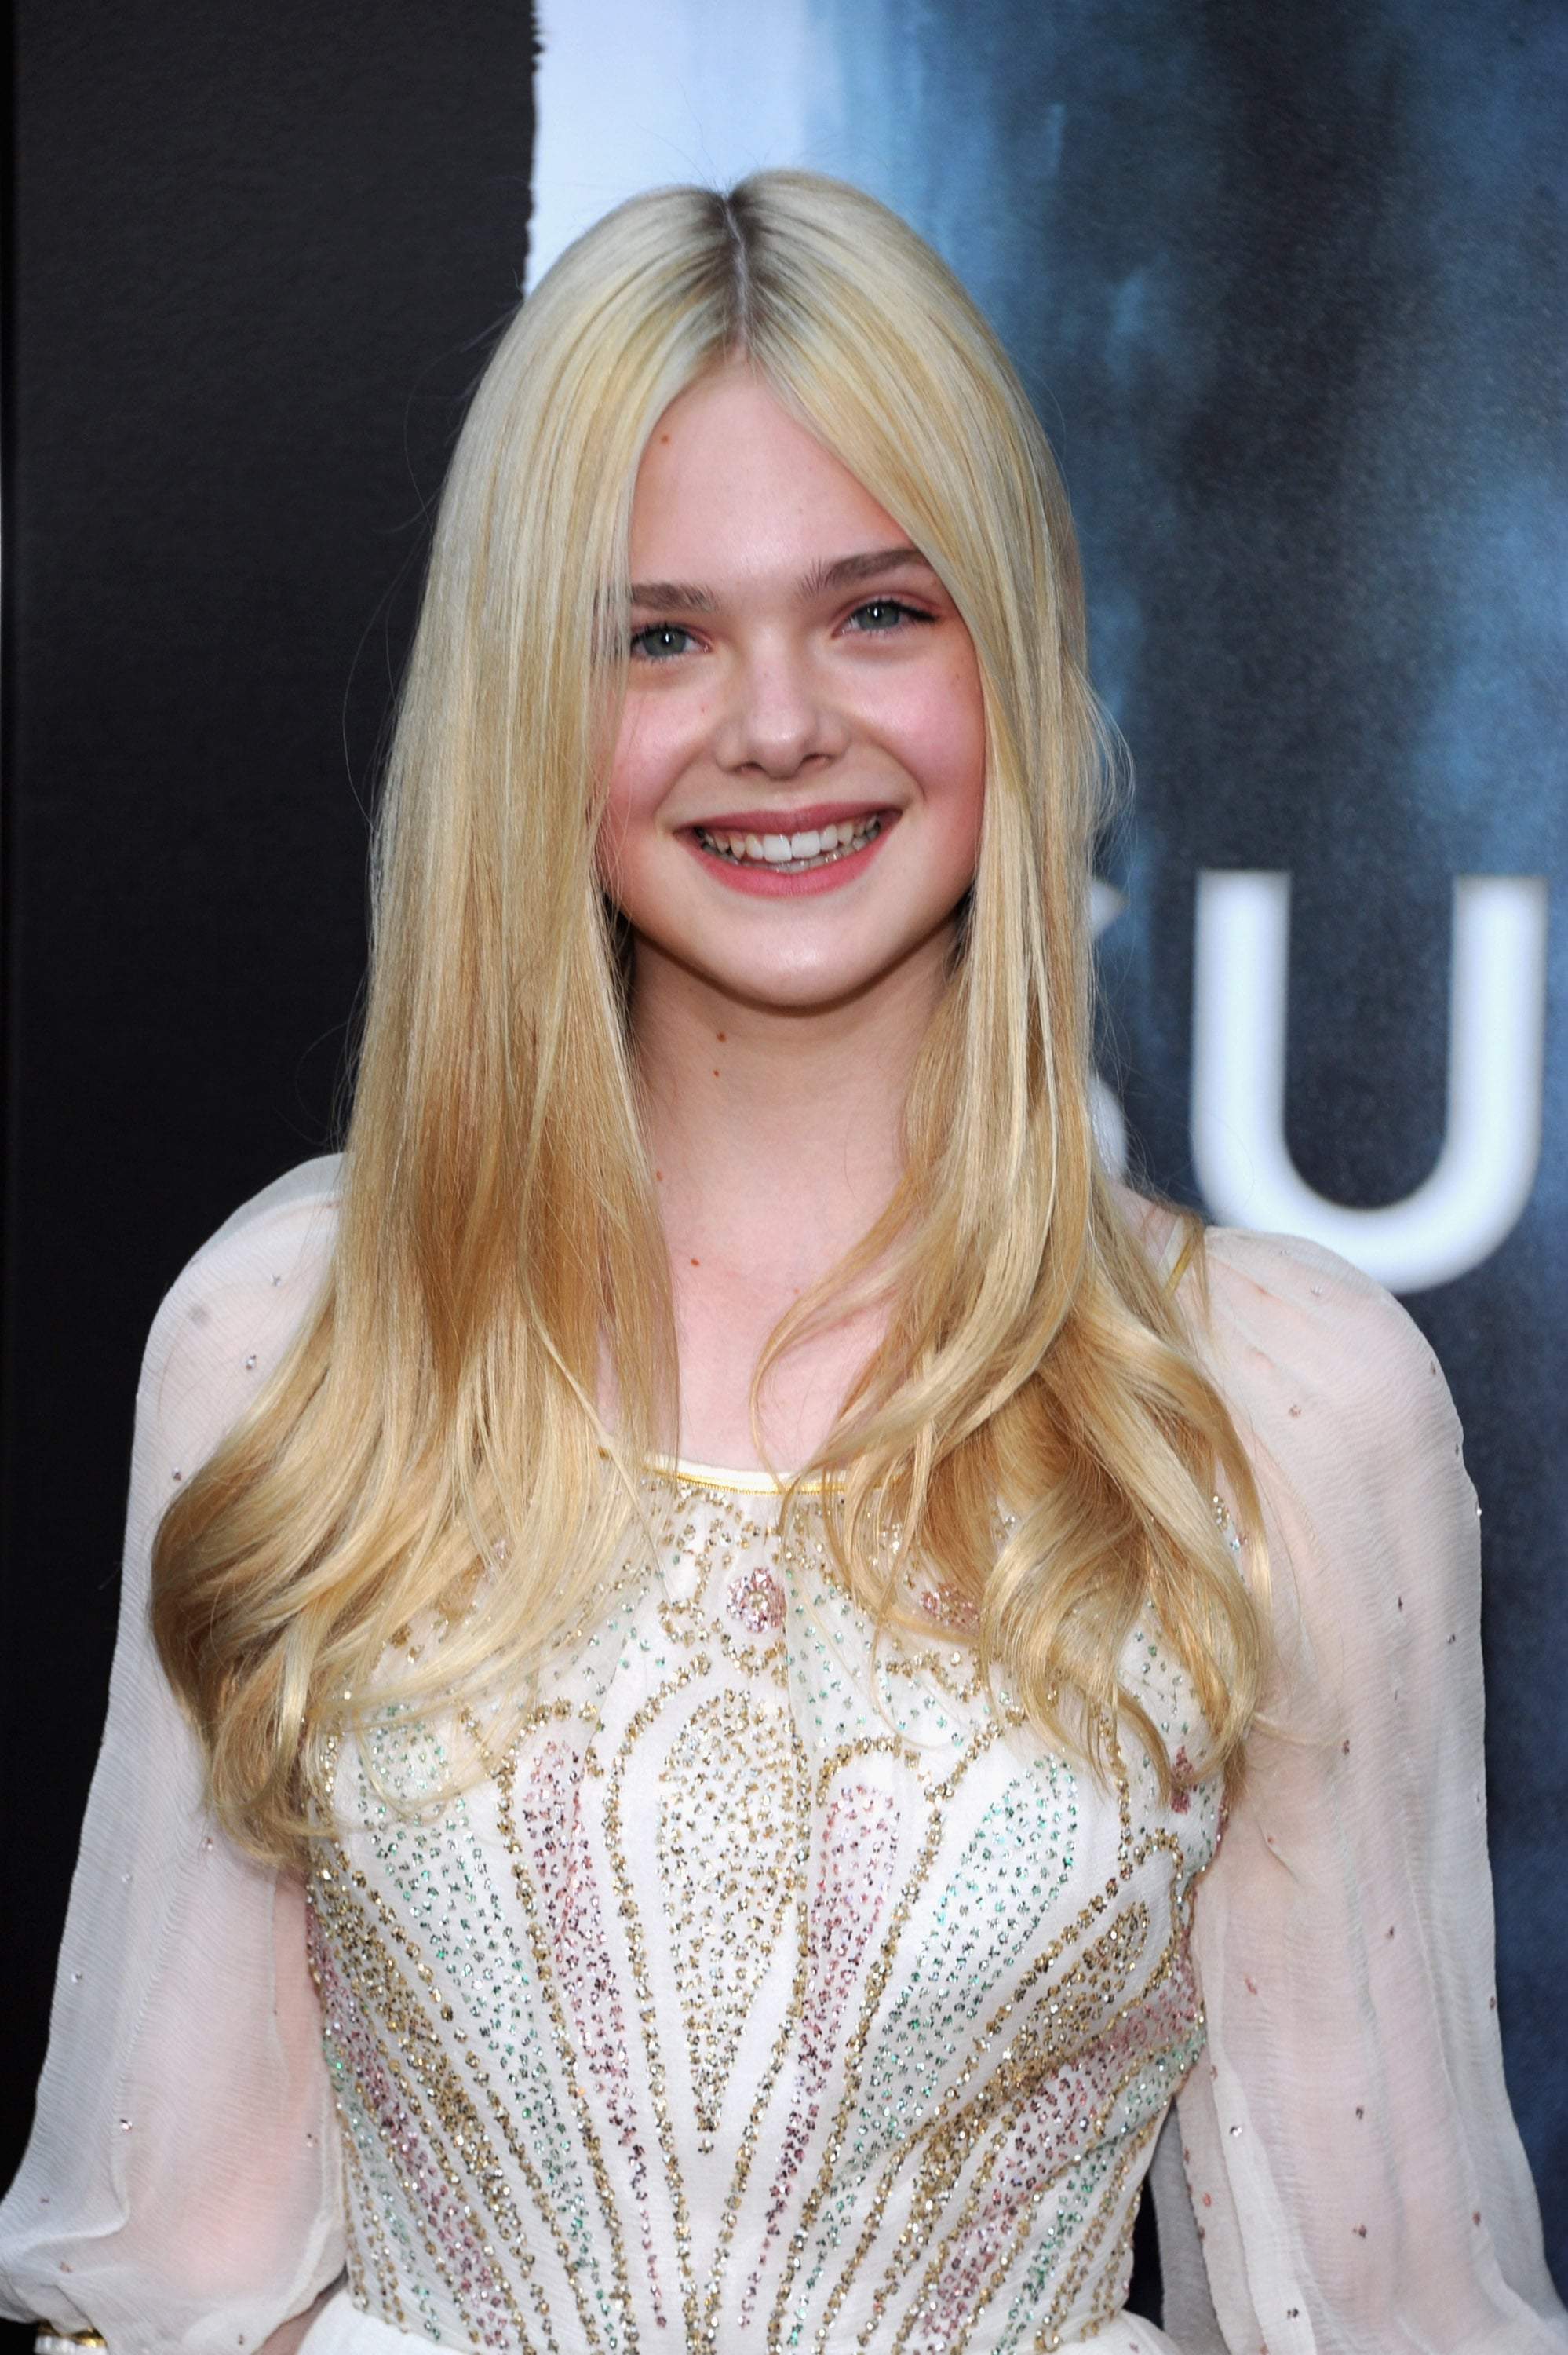 pictures of elle fanning  tom cruise  joel courtney  kyle